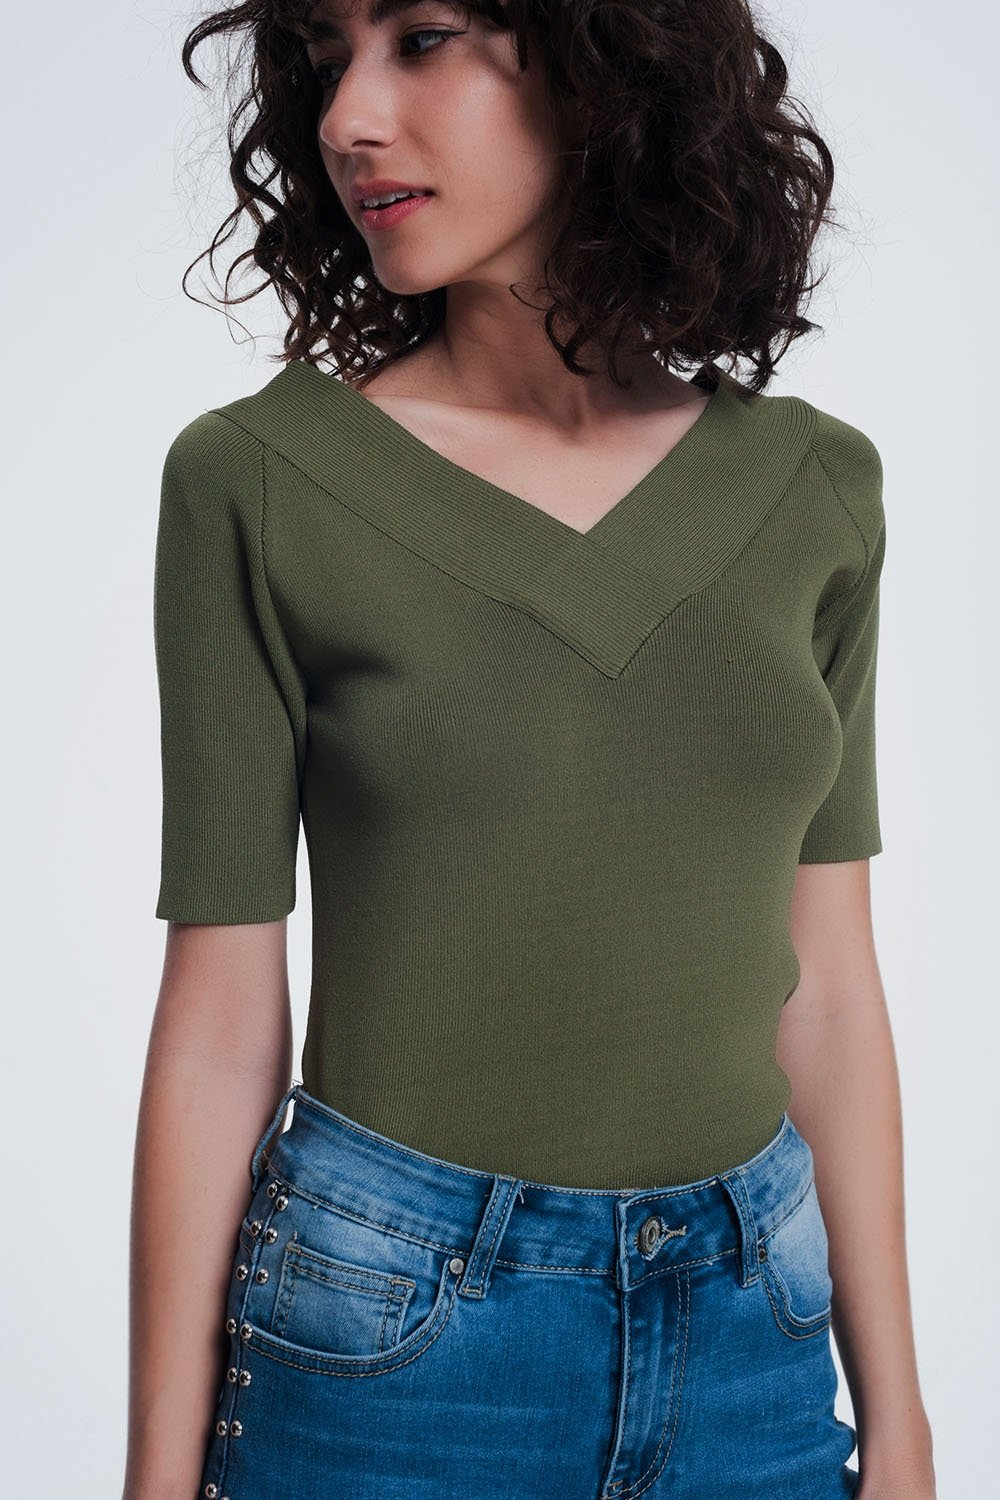 Khaki Sweater With v Neck and Short Sleeves